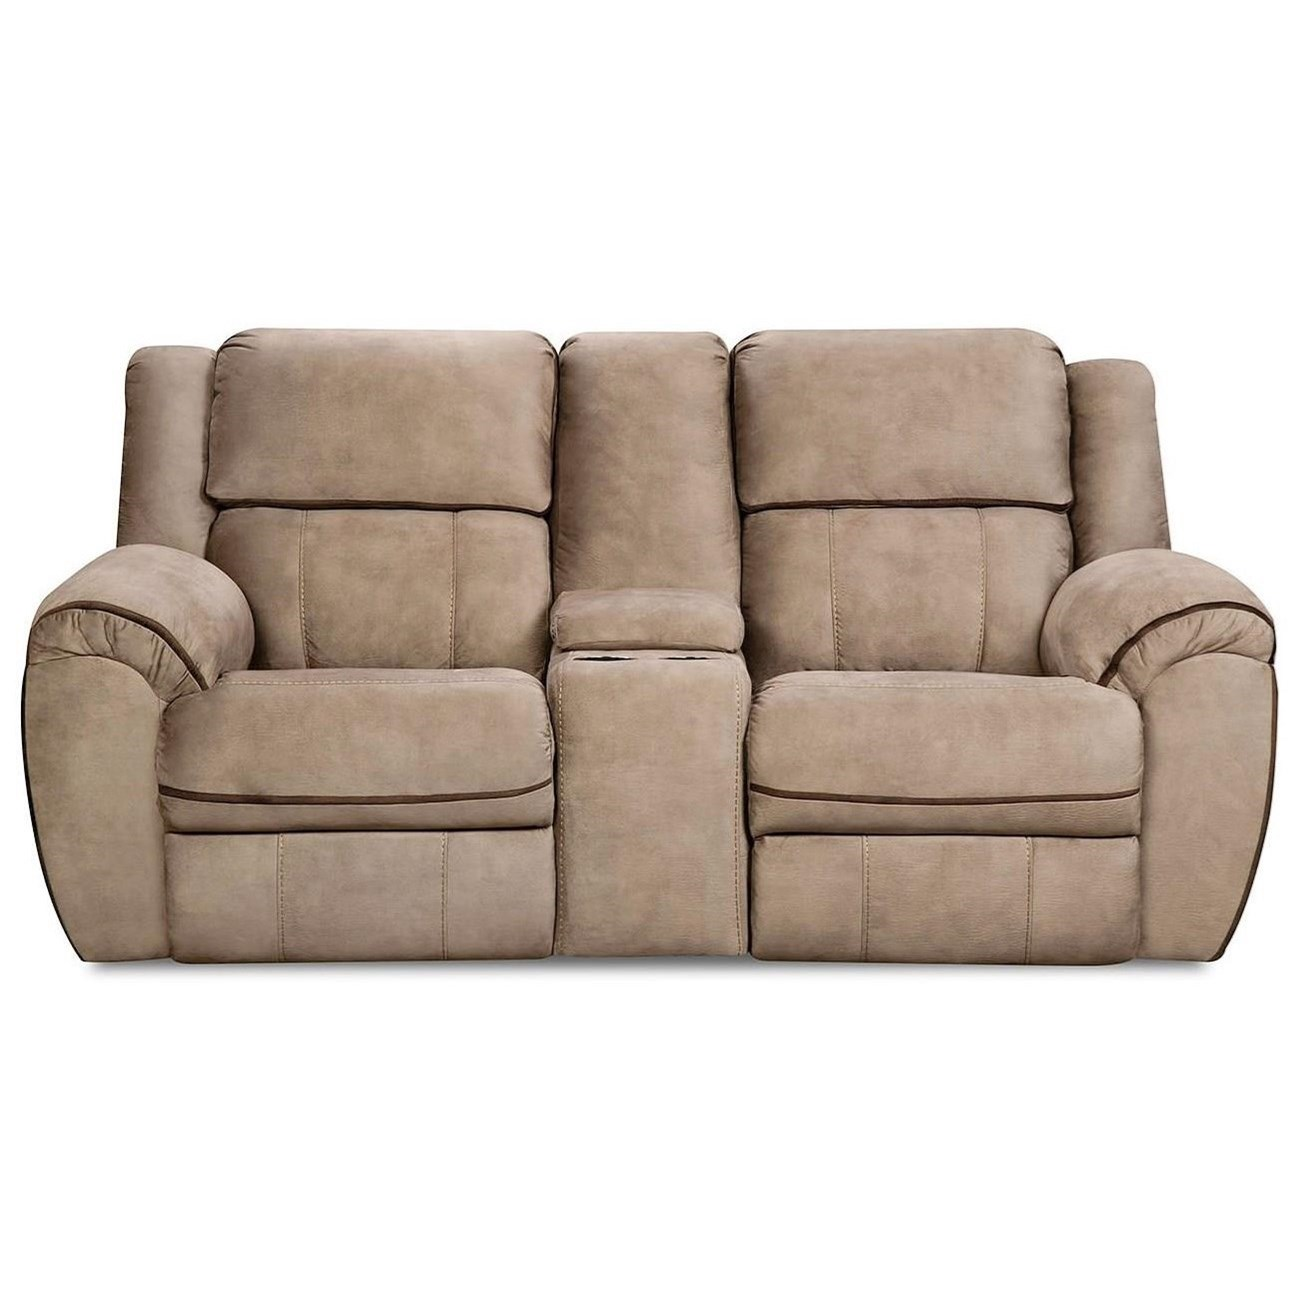 50436BR Reclining Console Loveseat by United Furniture Industries at Value City Furniture